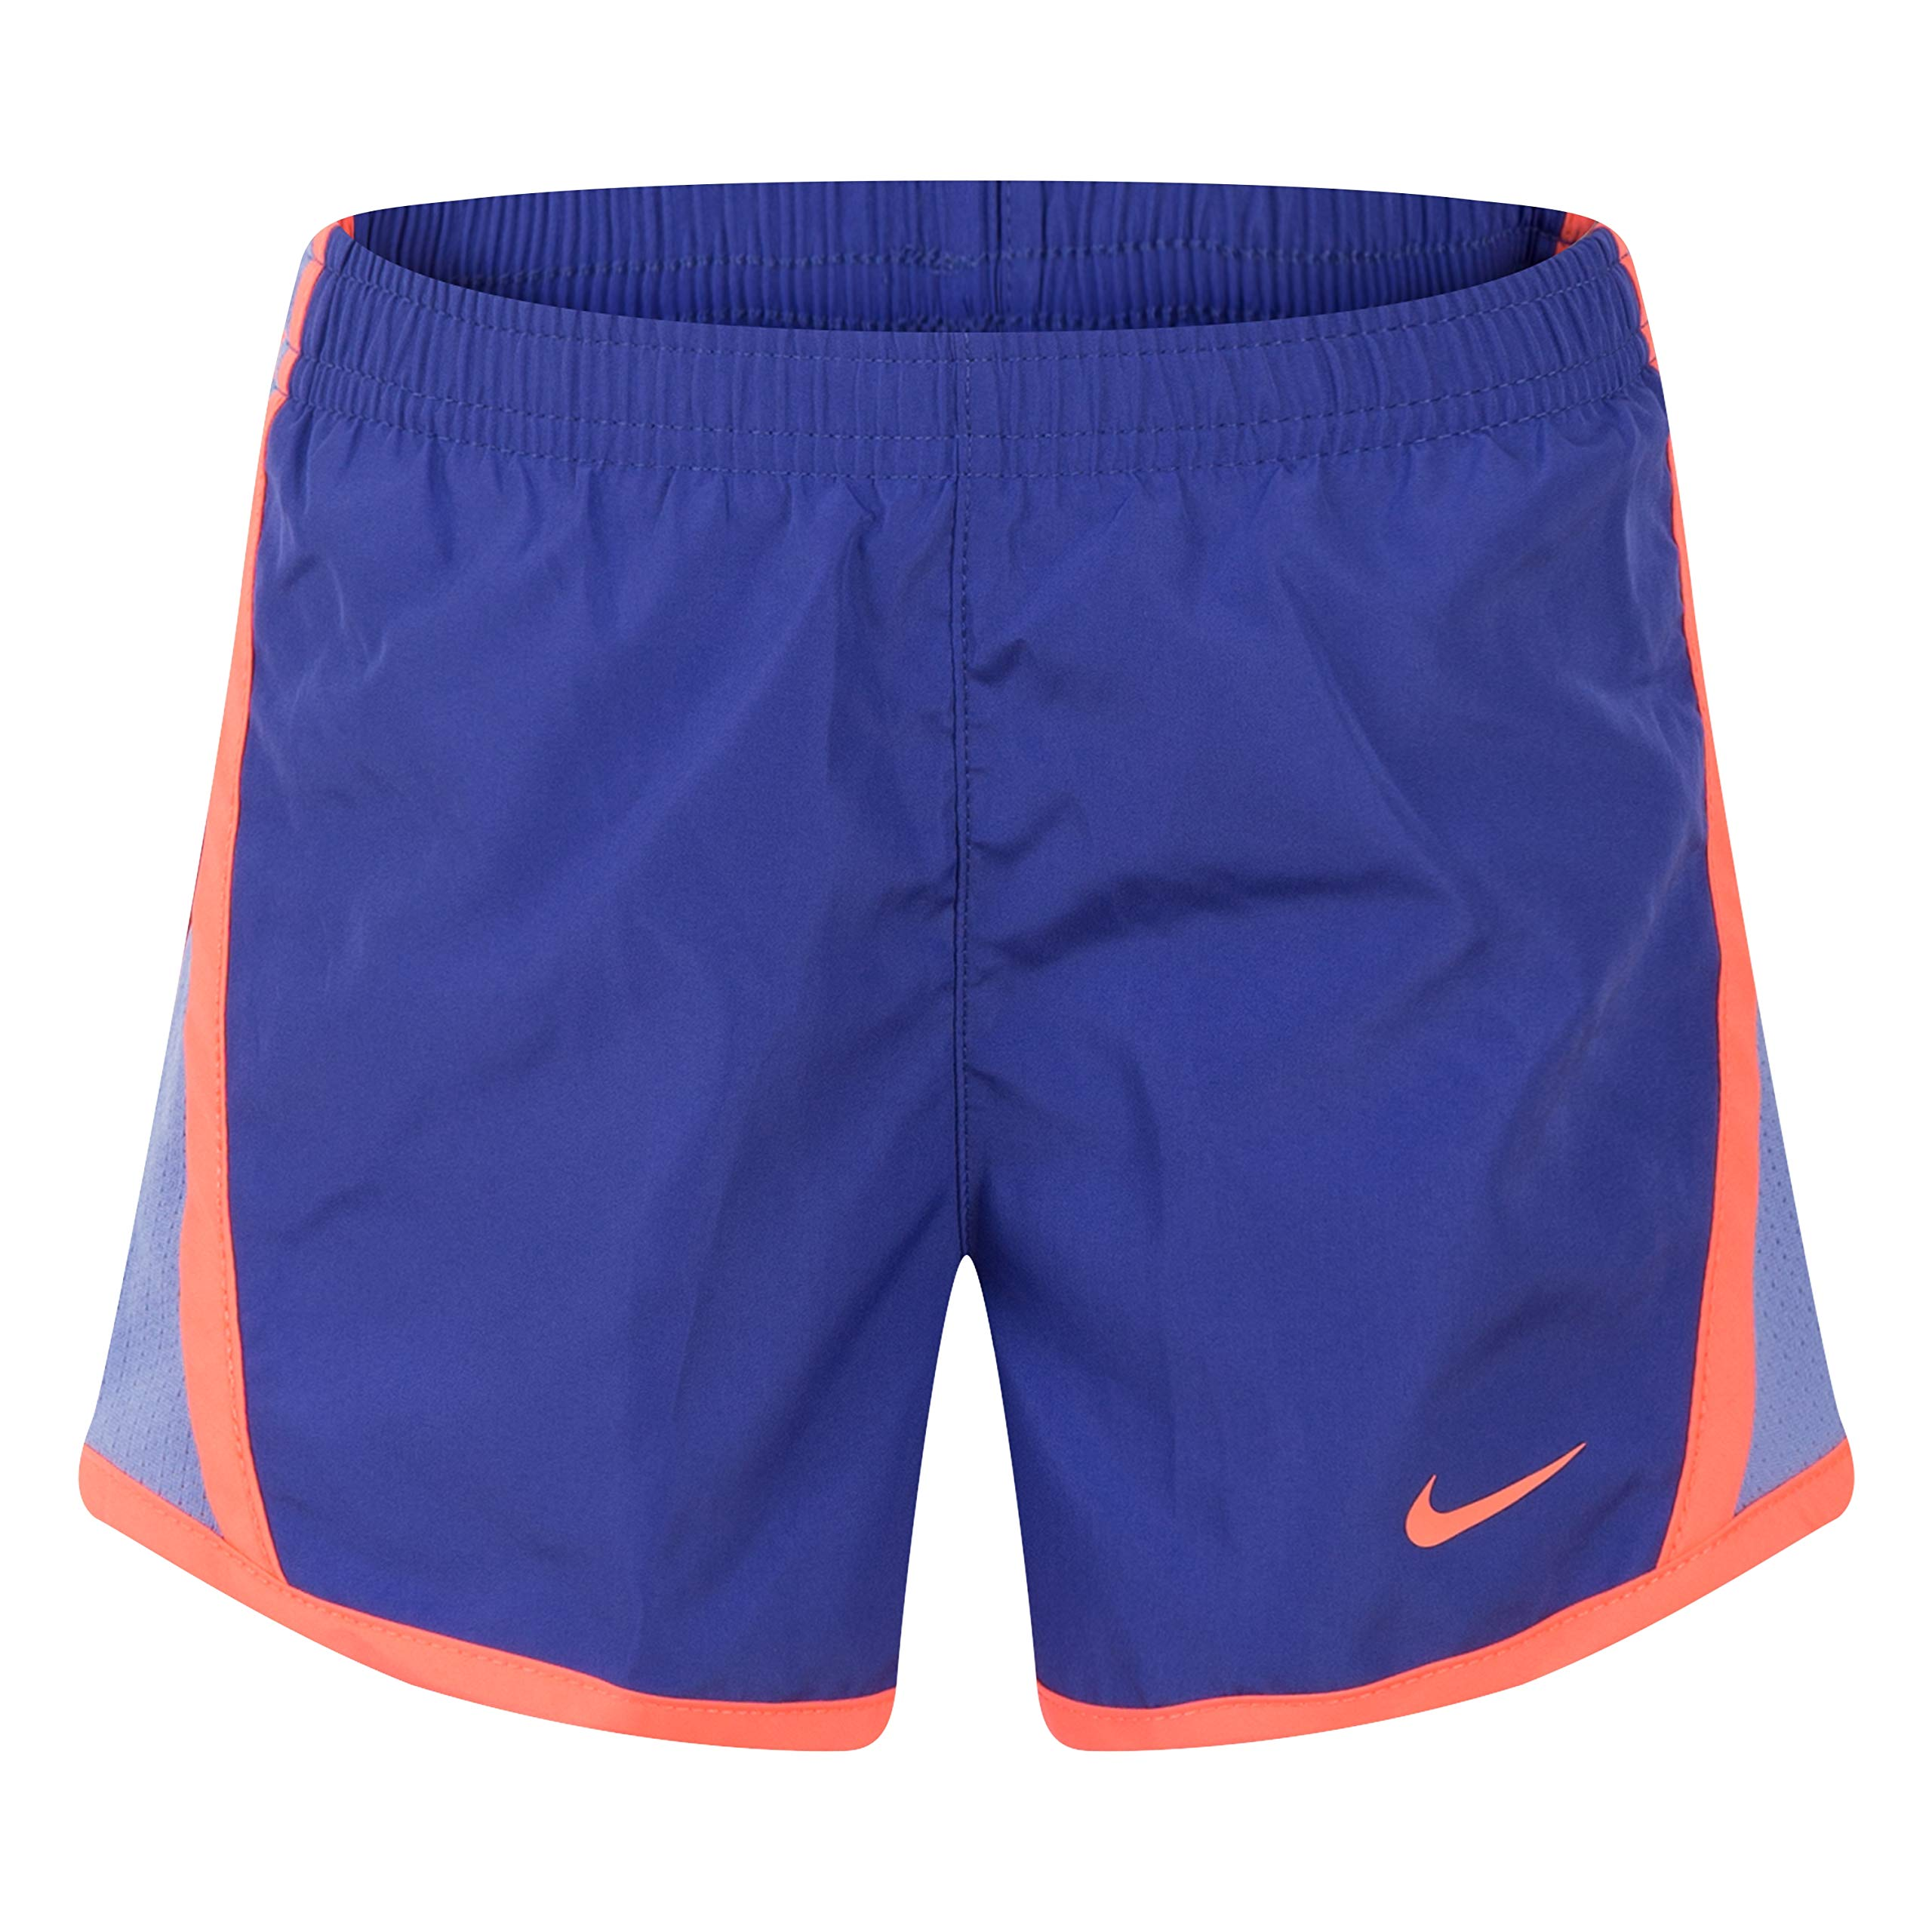 NIKE Children's Apparel Girls' Little Dri-FIT Tempo Shorts, Rush Violet, 6X by NIKE Children's Apparel